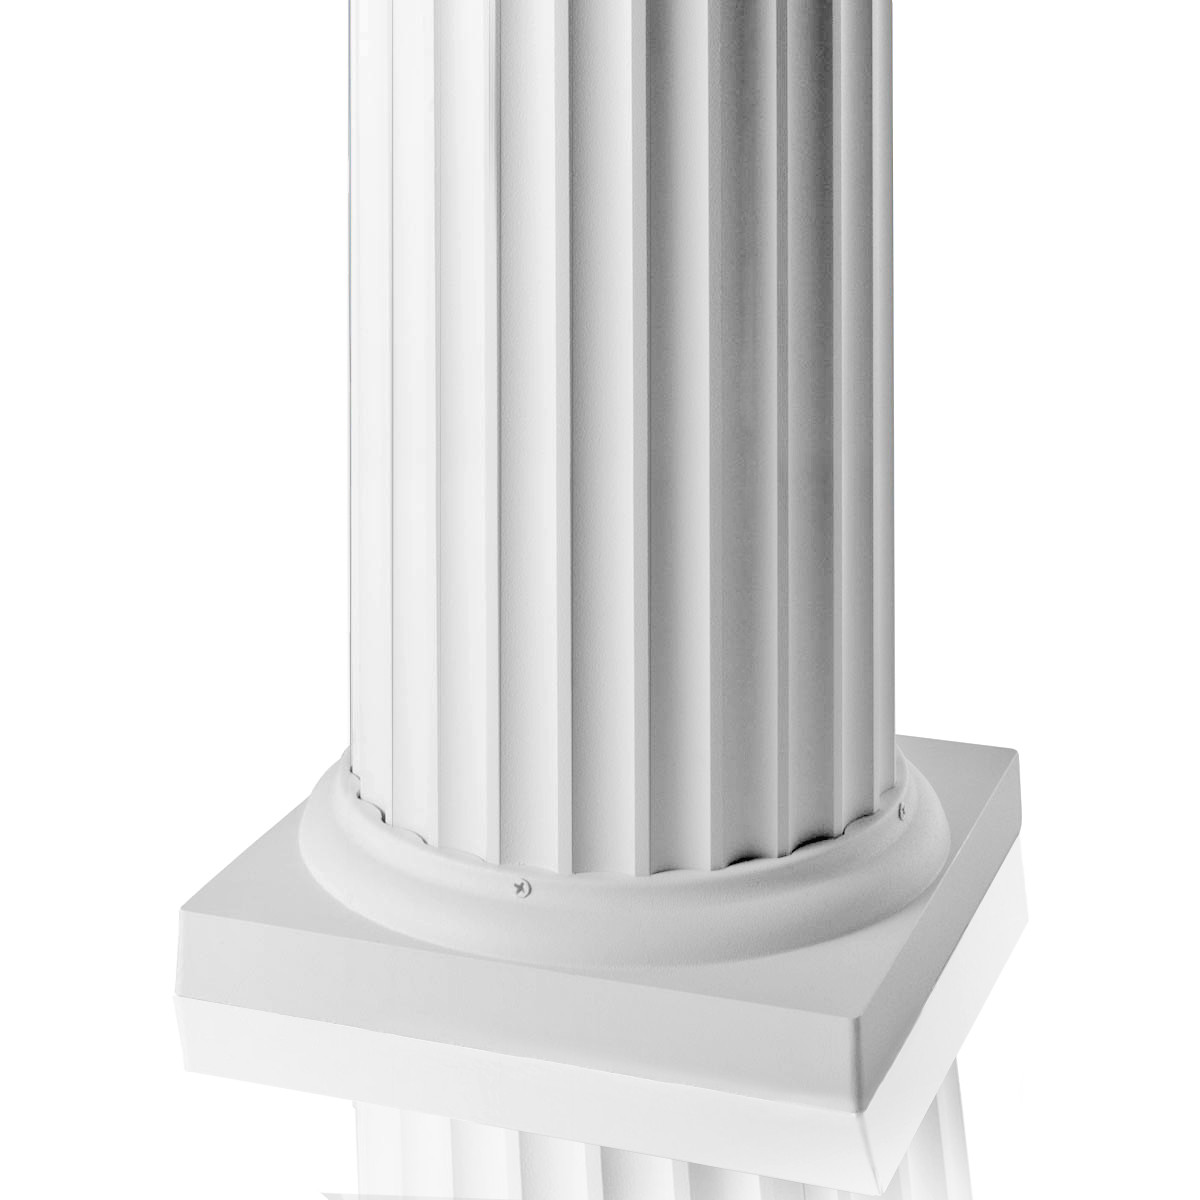 AFCO Round Fluted Aluminum Column Post Kits - Textured White